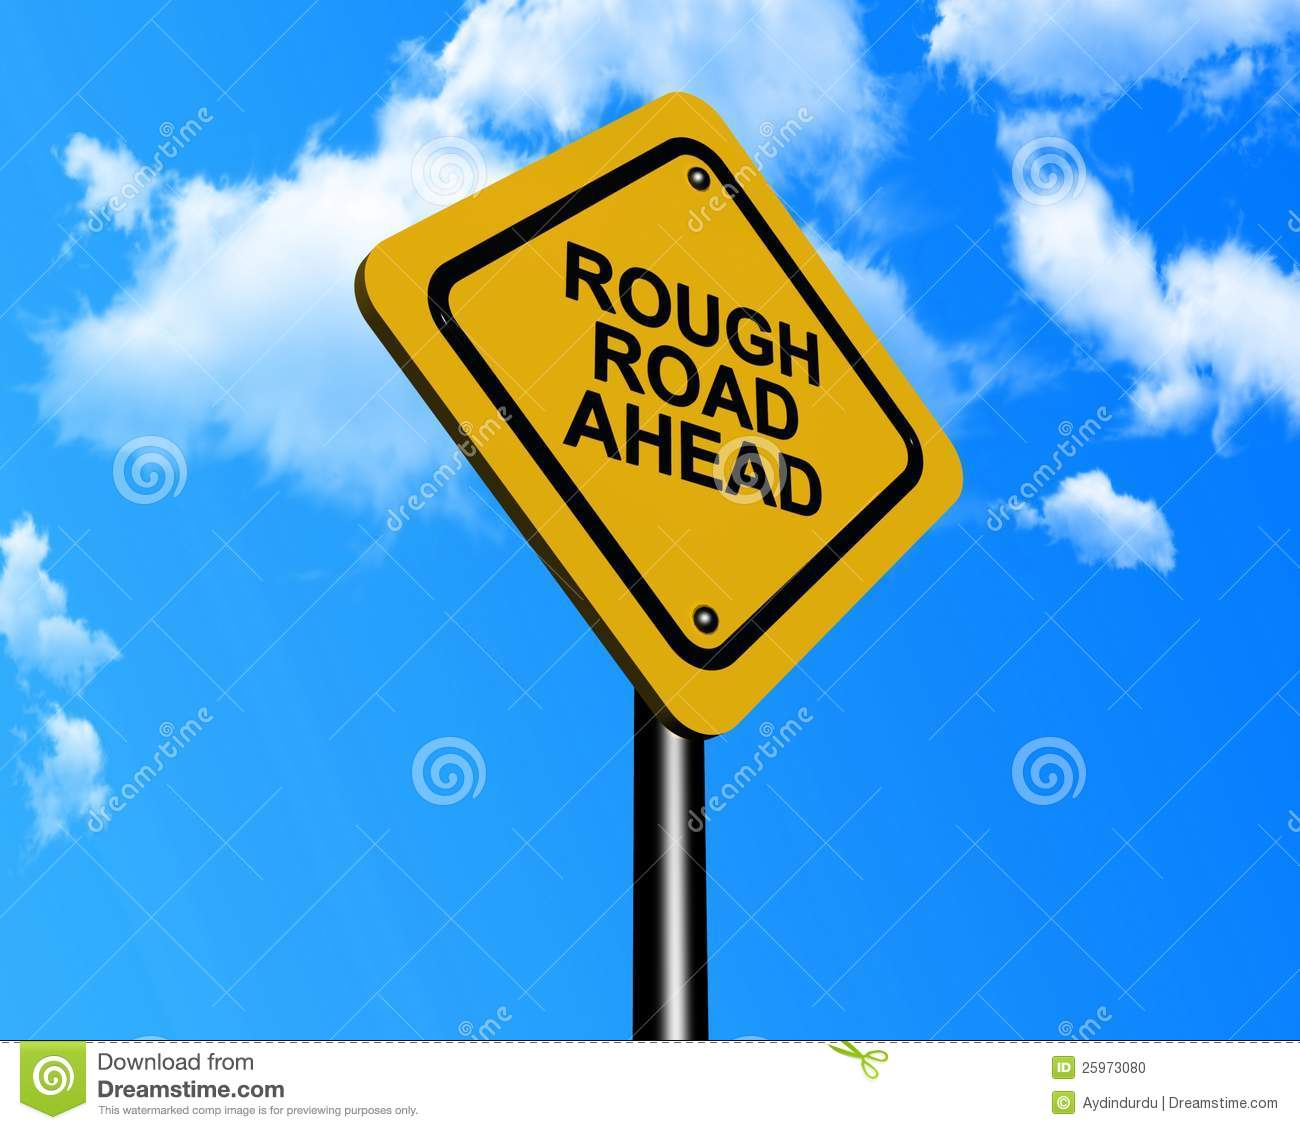 http://www.dreamstime.com/stock-photo-rough-road-ahead-sign-image25973080